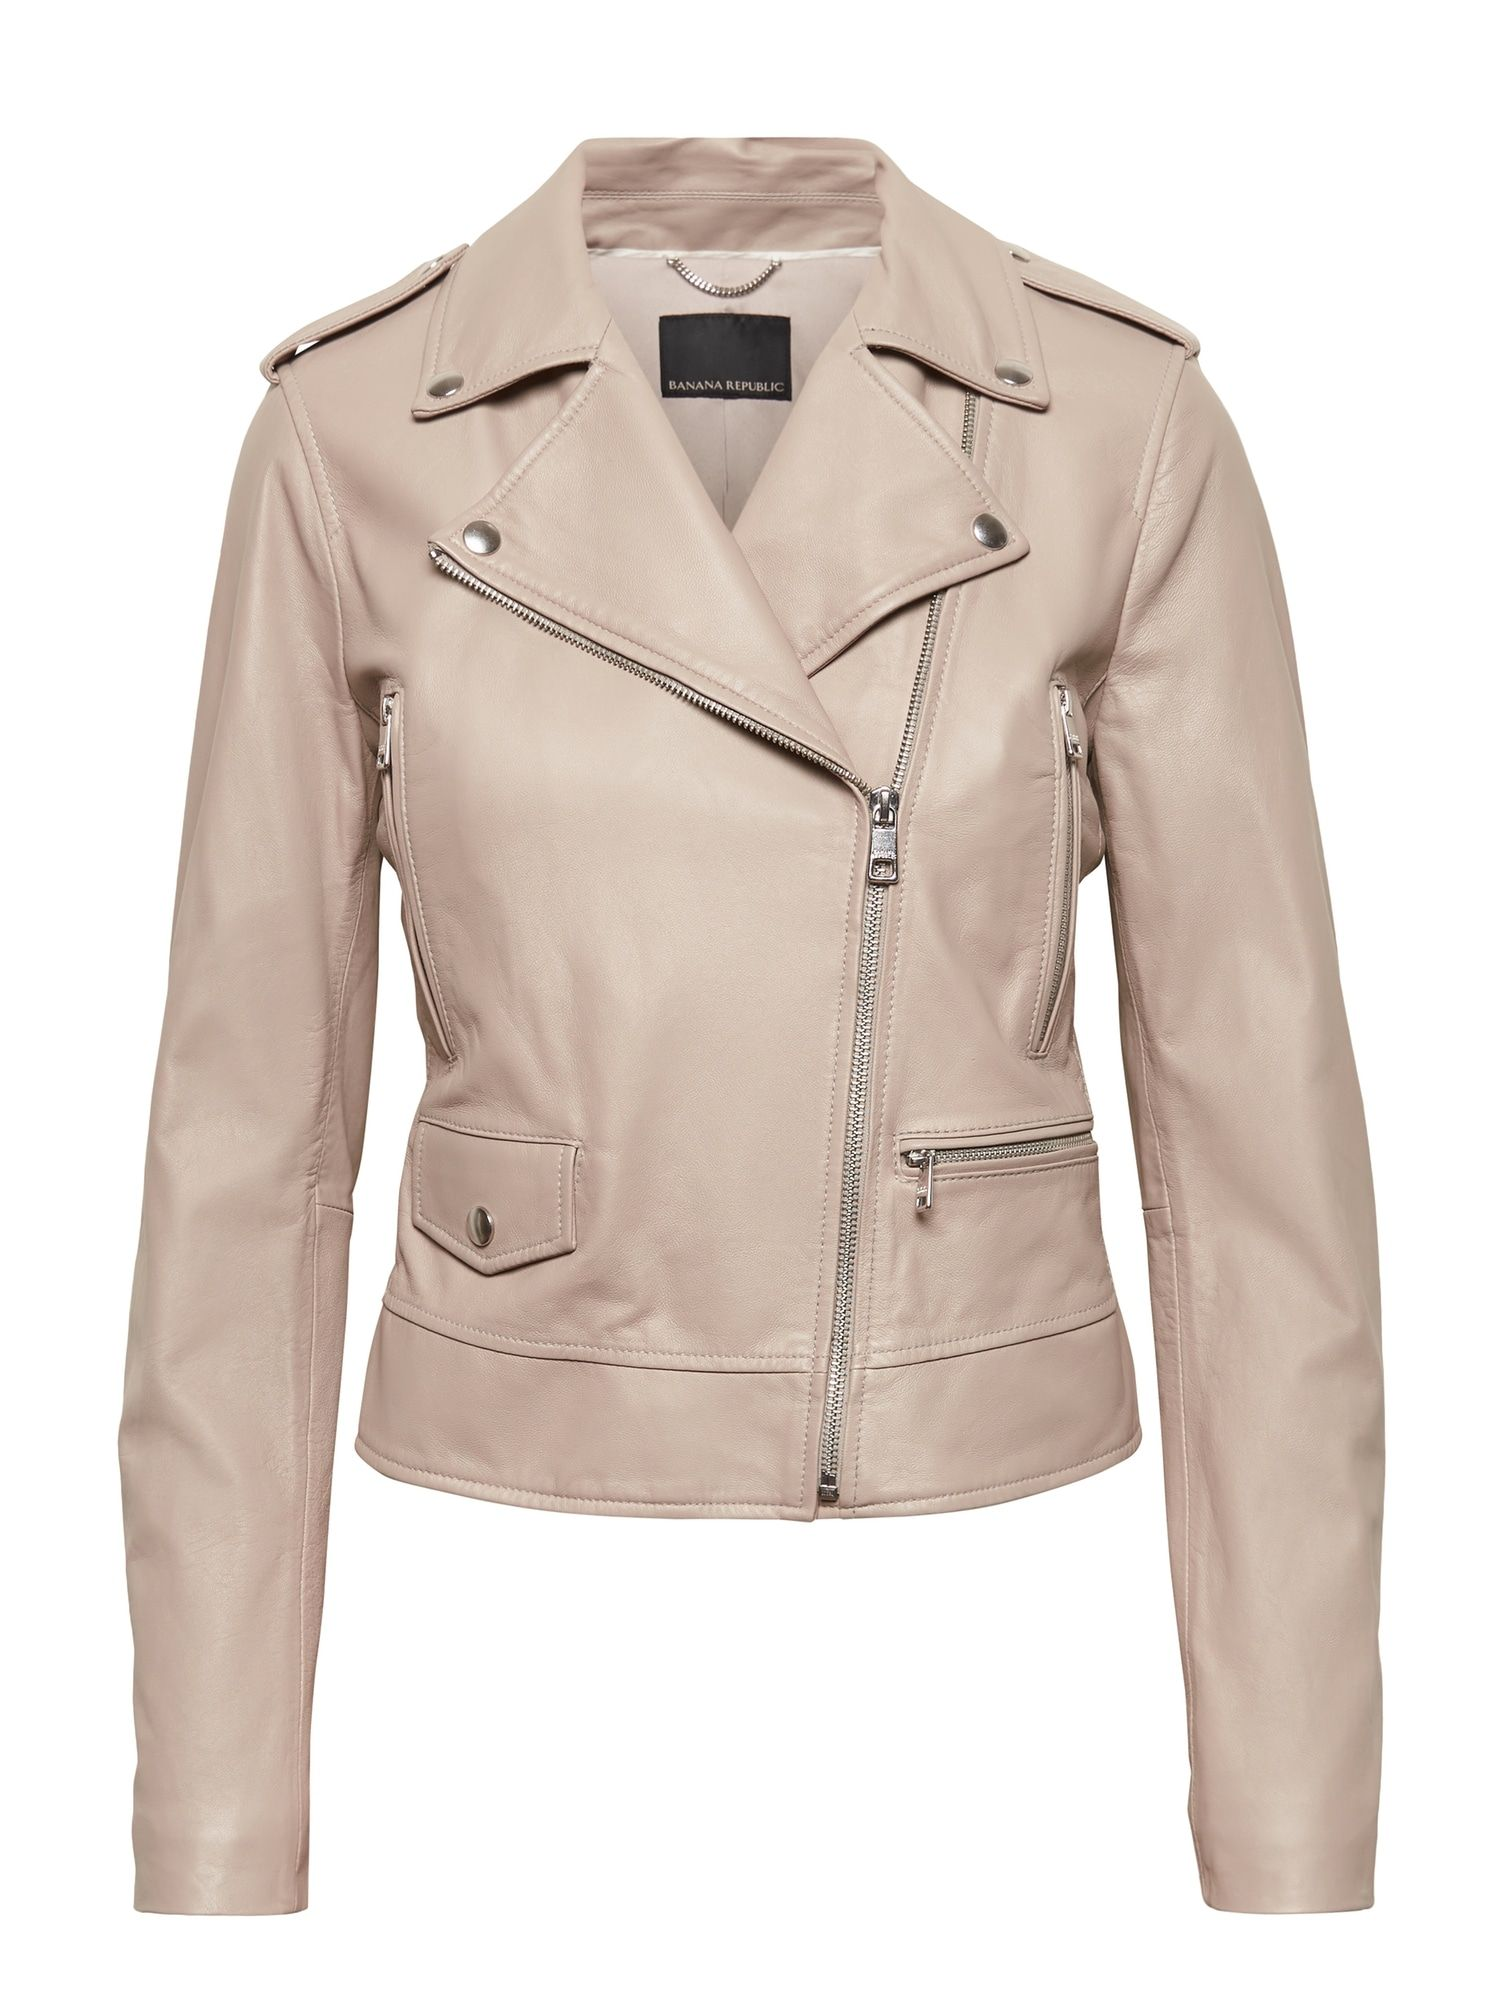 Bring On The Beige Leather Moto Jacket Banana Republic Beige Leather Jacket Leather Jacket Outfits Leather Outerwear [ 2000 x 1500 Pixel ]